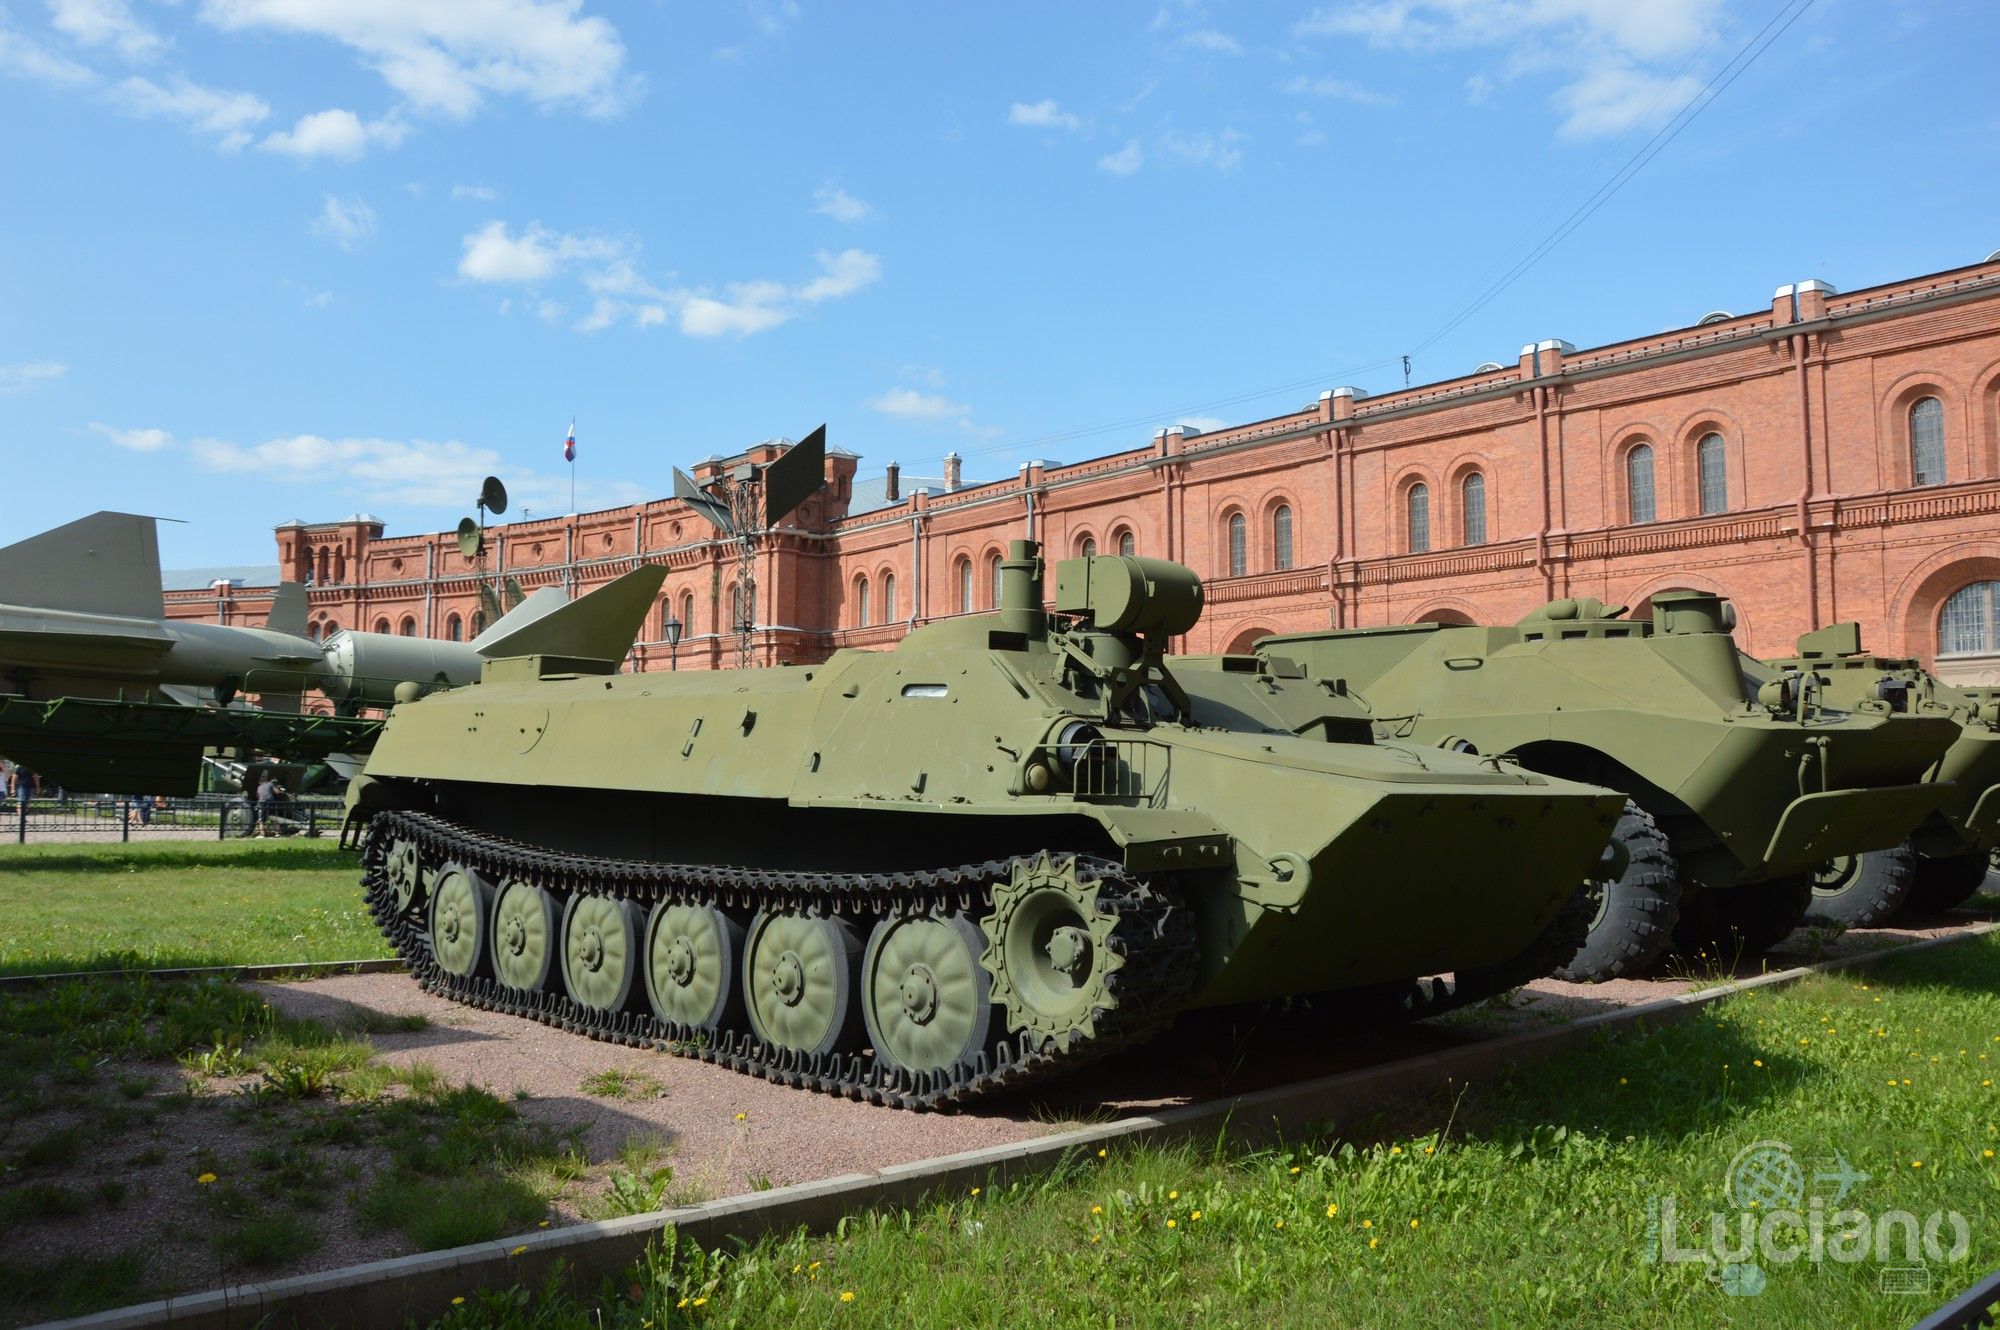 Military-Historical-Museum-of-Artillery-Engineer-and-Signal-Corps-St-Petersburg-Russia-Luciano-Blancato- (32)